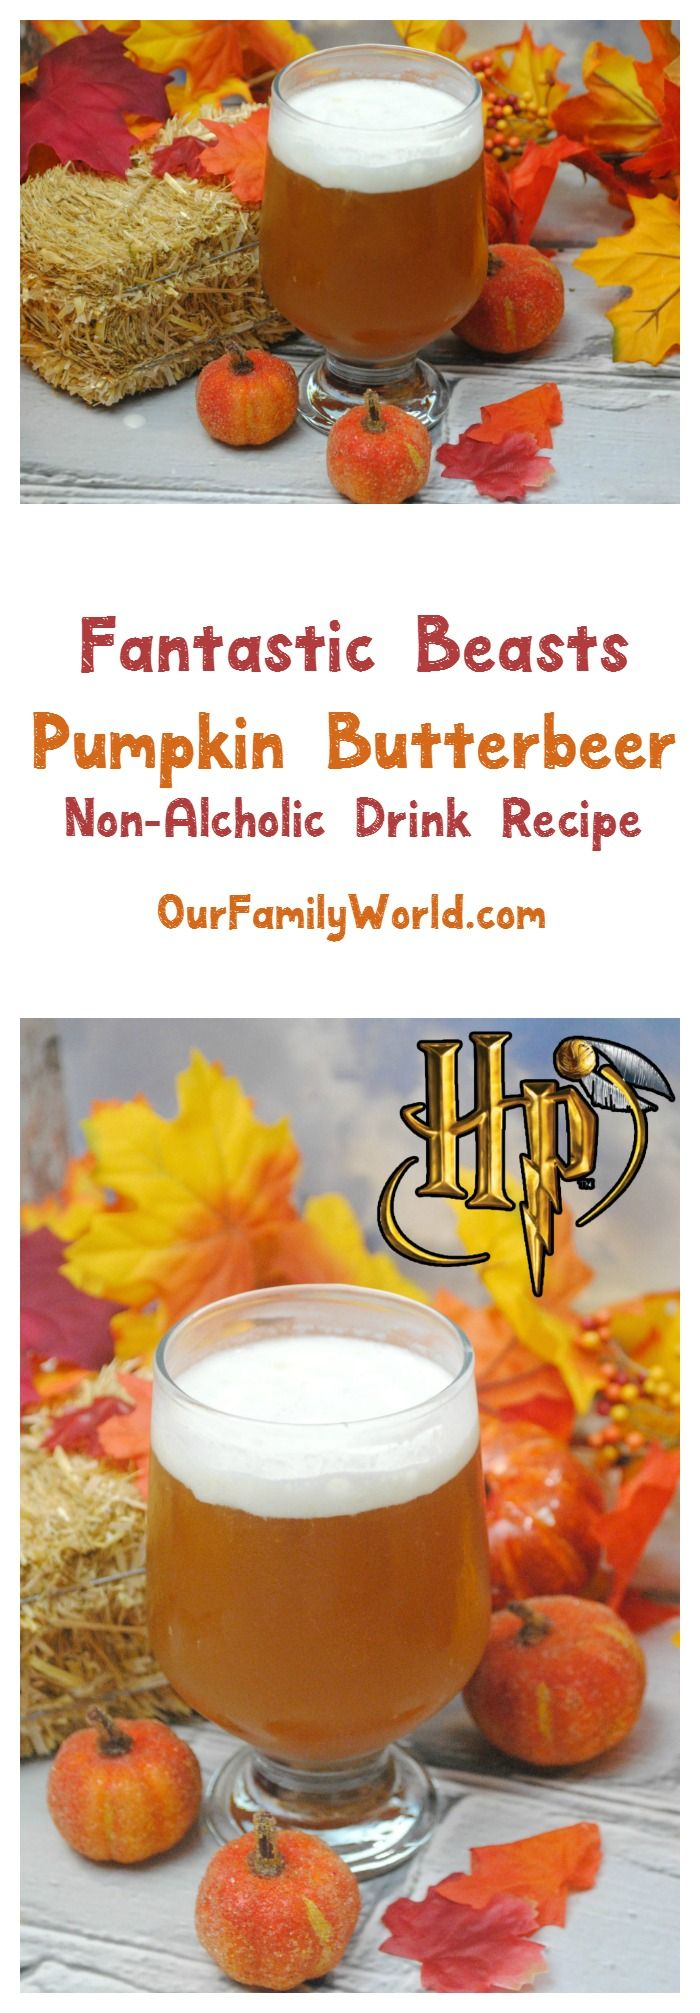 Planning a Fantastic Beasts and Where to Find Them Movie Party? Don't forget the nonalcoholic drinks, like our yummy pumpkin butterbeer! Perfect for a Harry Potter party too!